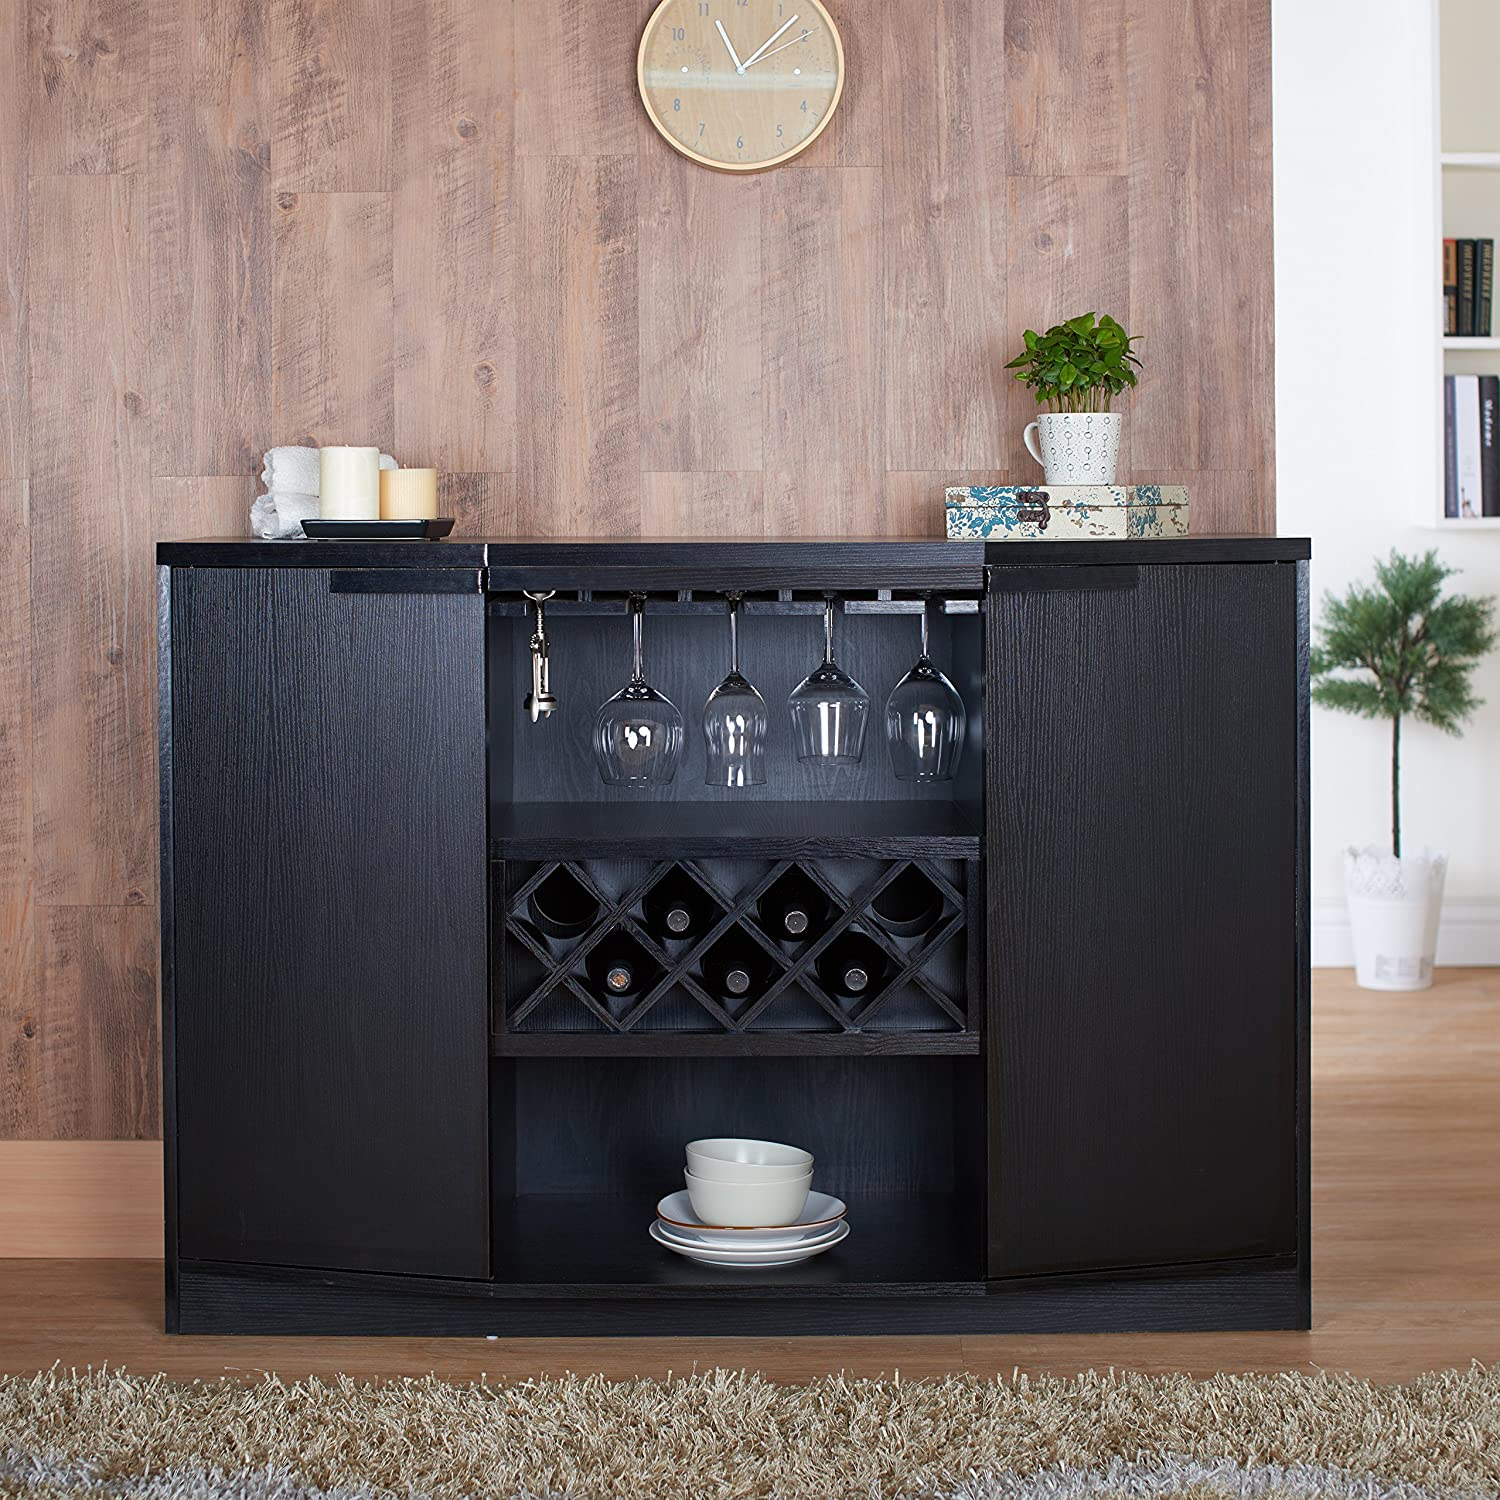 cupboard black furniture get base of bar room organized full kitchen built table cabinet bottles in barrel size rack wine all